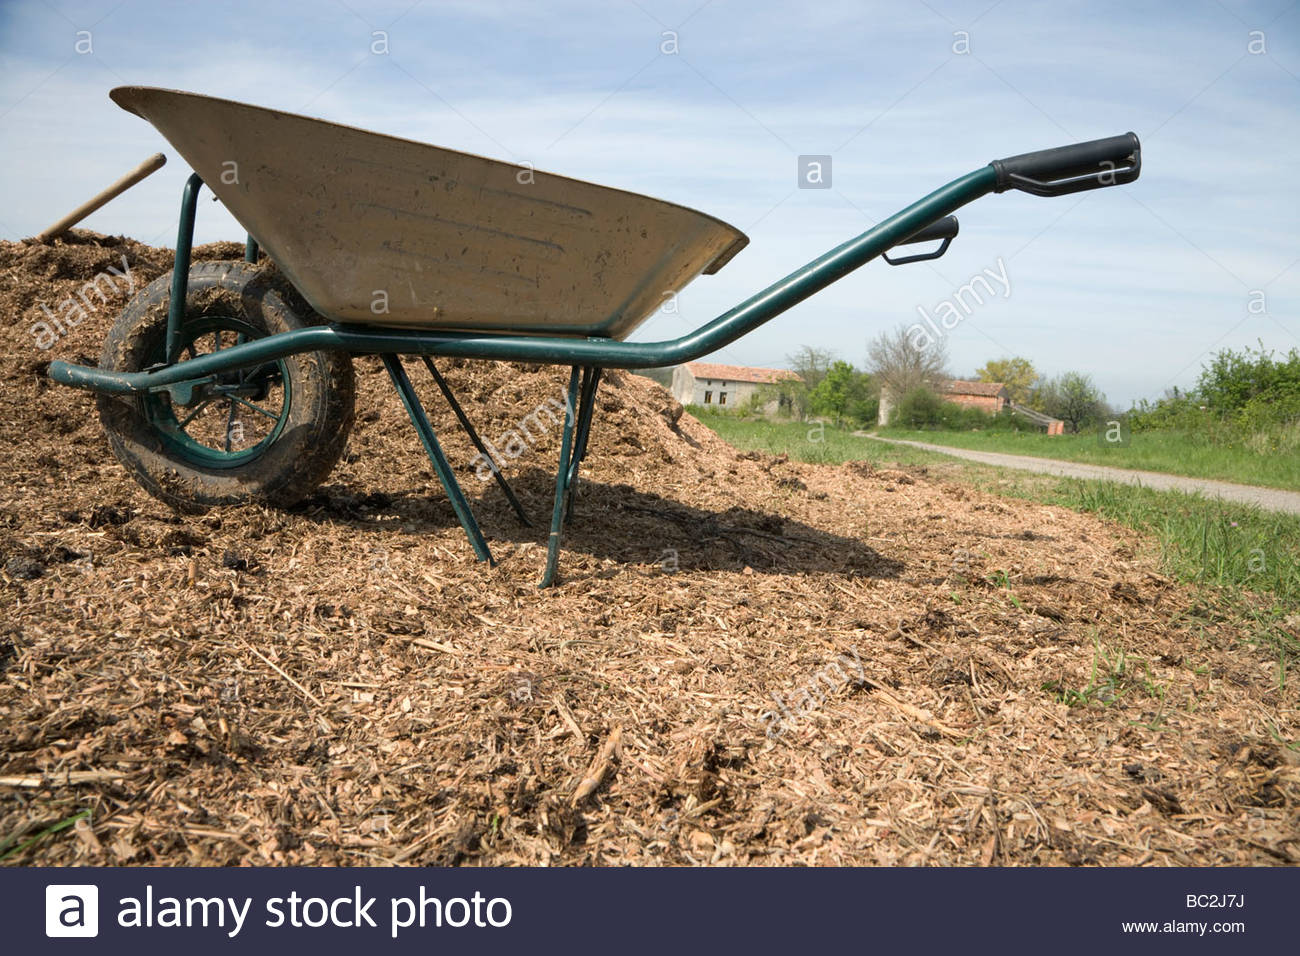 wheelbarrow at a heap with wood chips - Stock Image